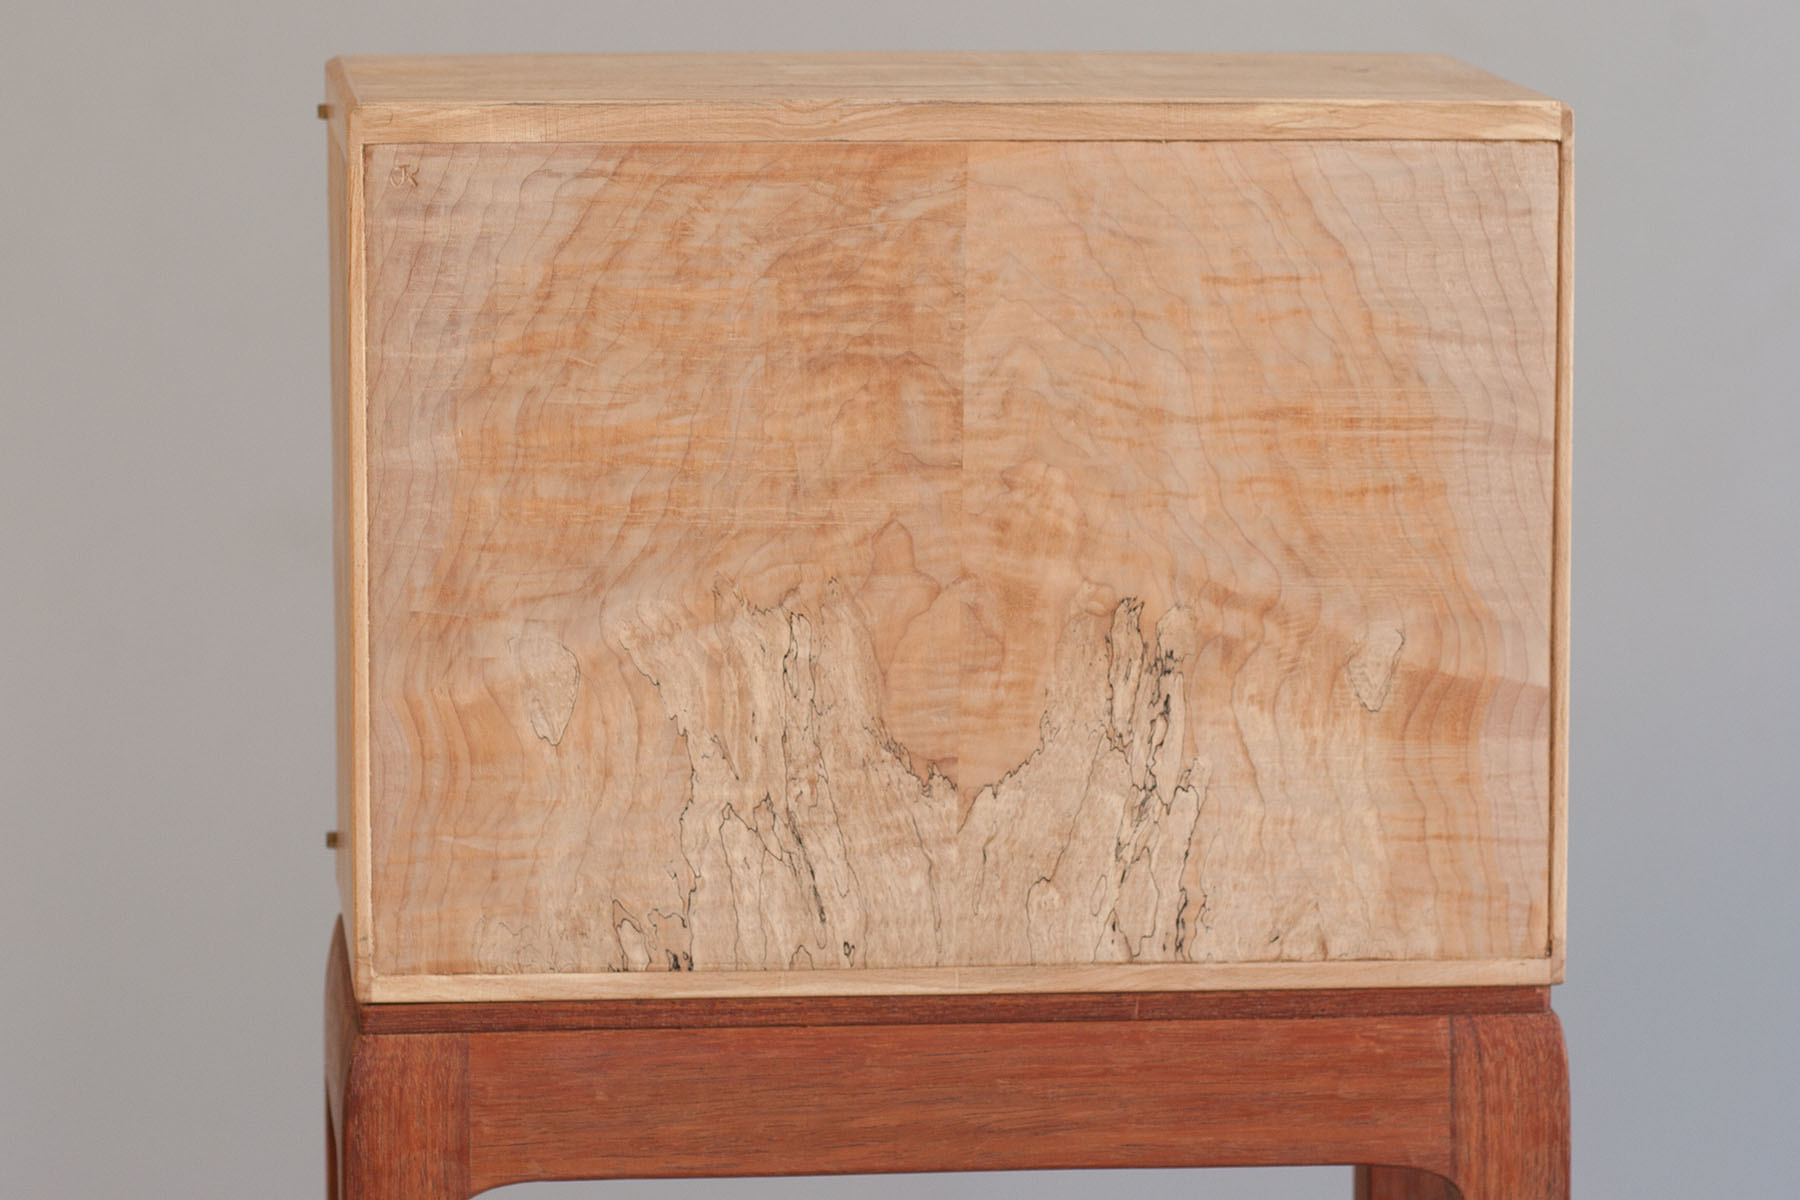 Spalted Maple Burl Cabinet